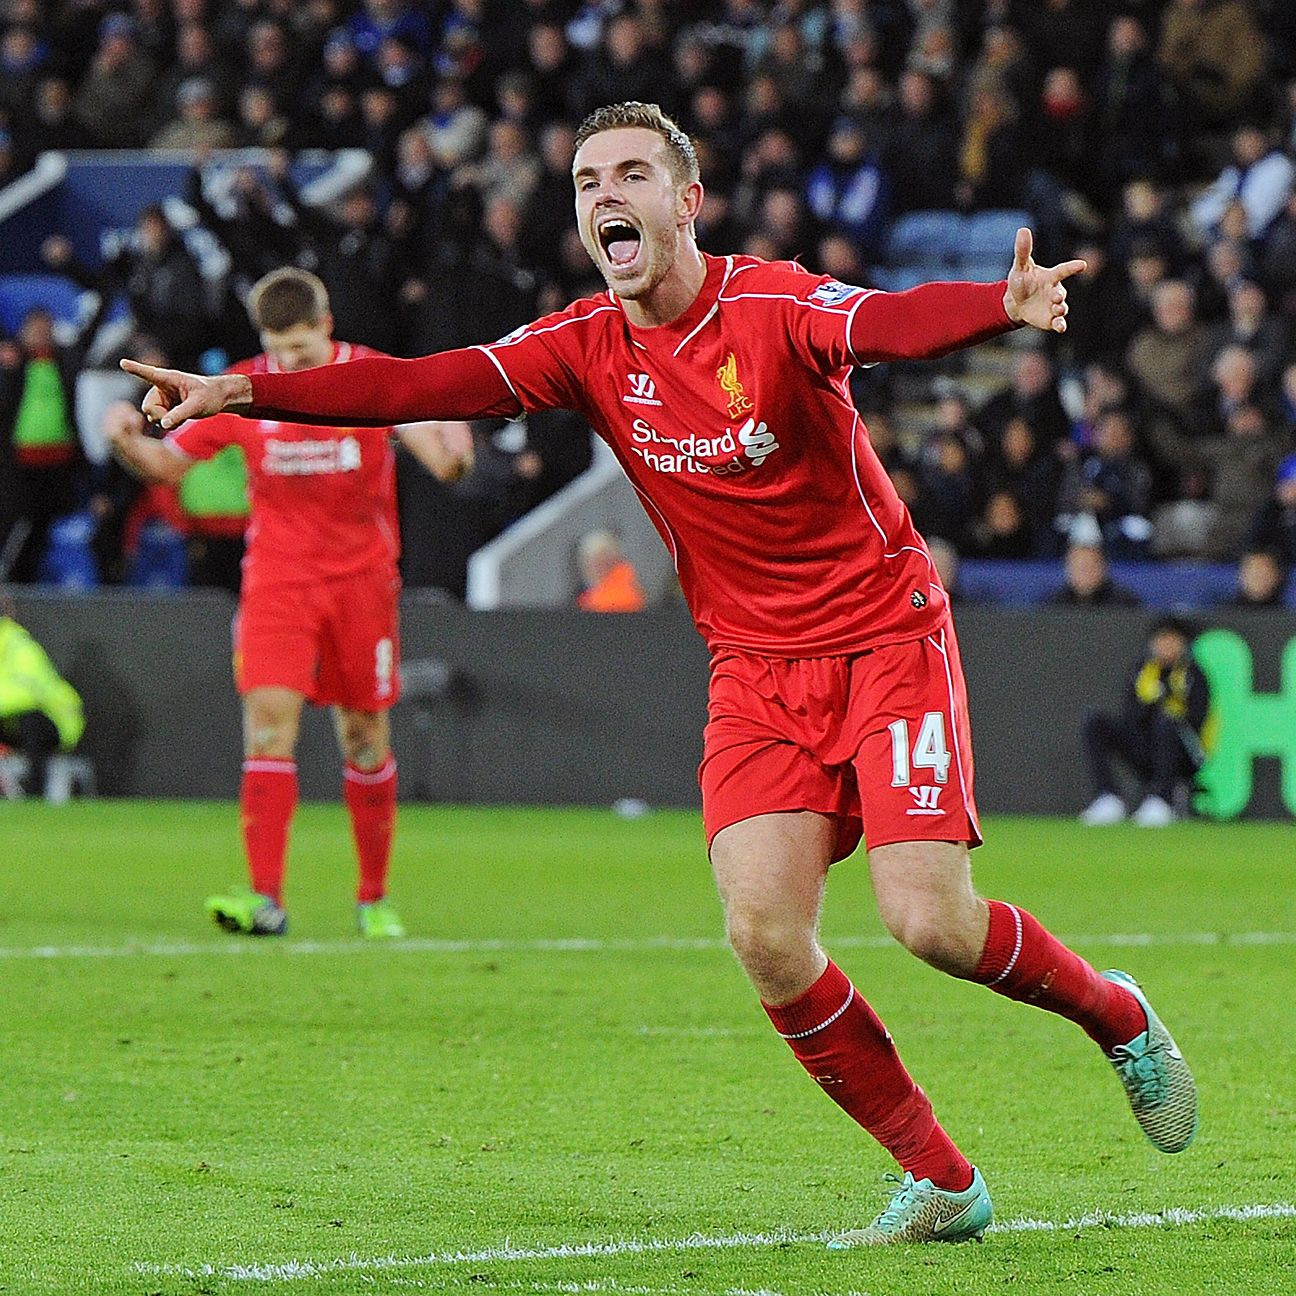 In a season full of struggles, the play of Jordan Henderson has been a bright spot for Liverpool.